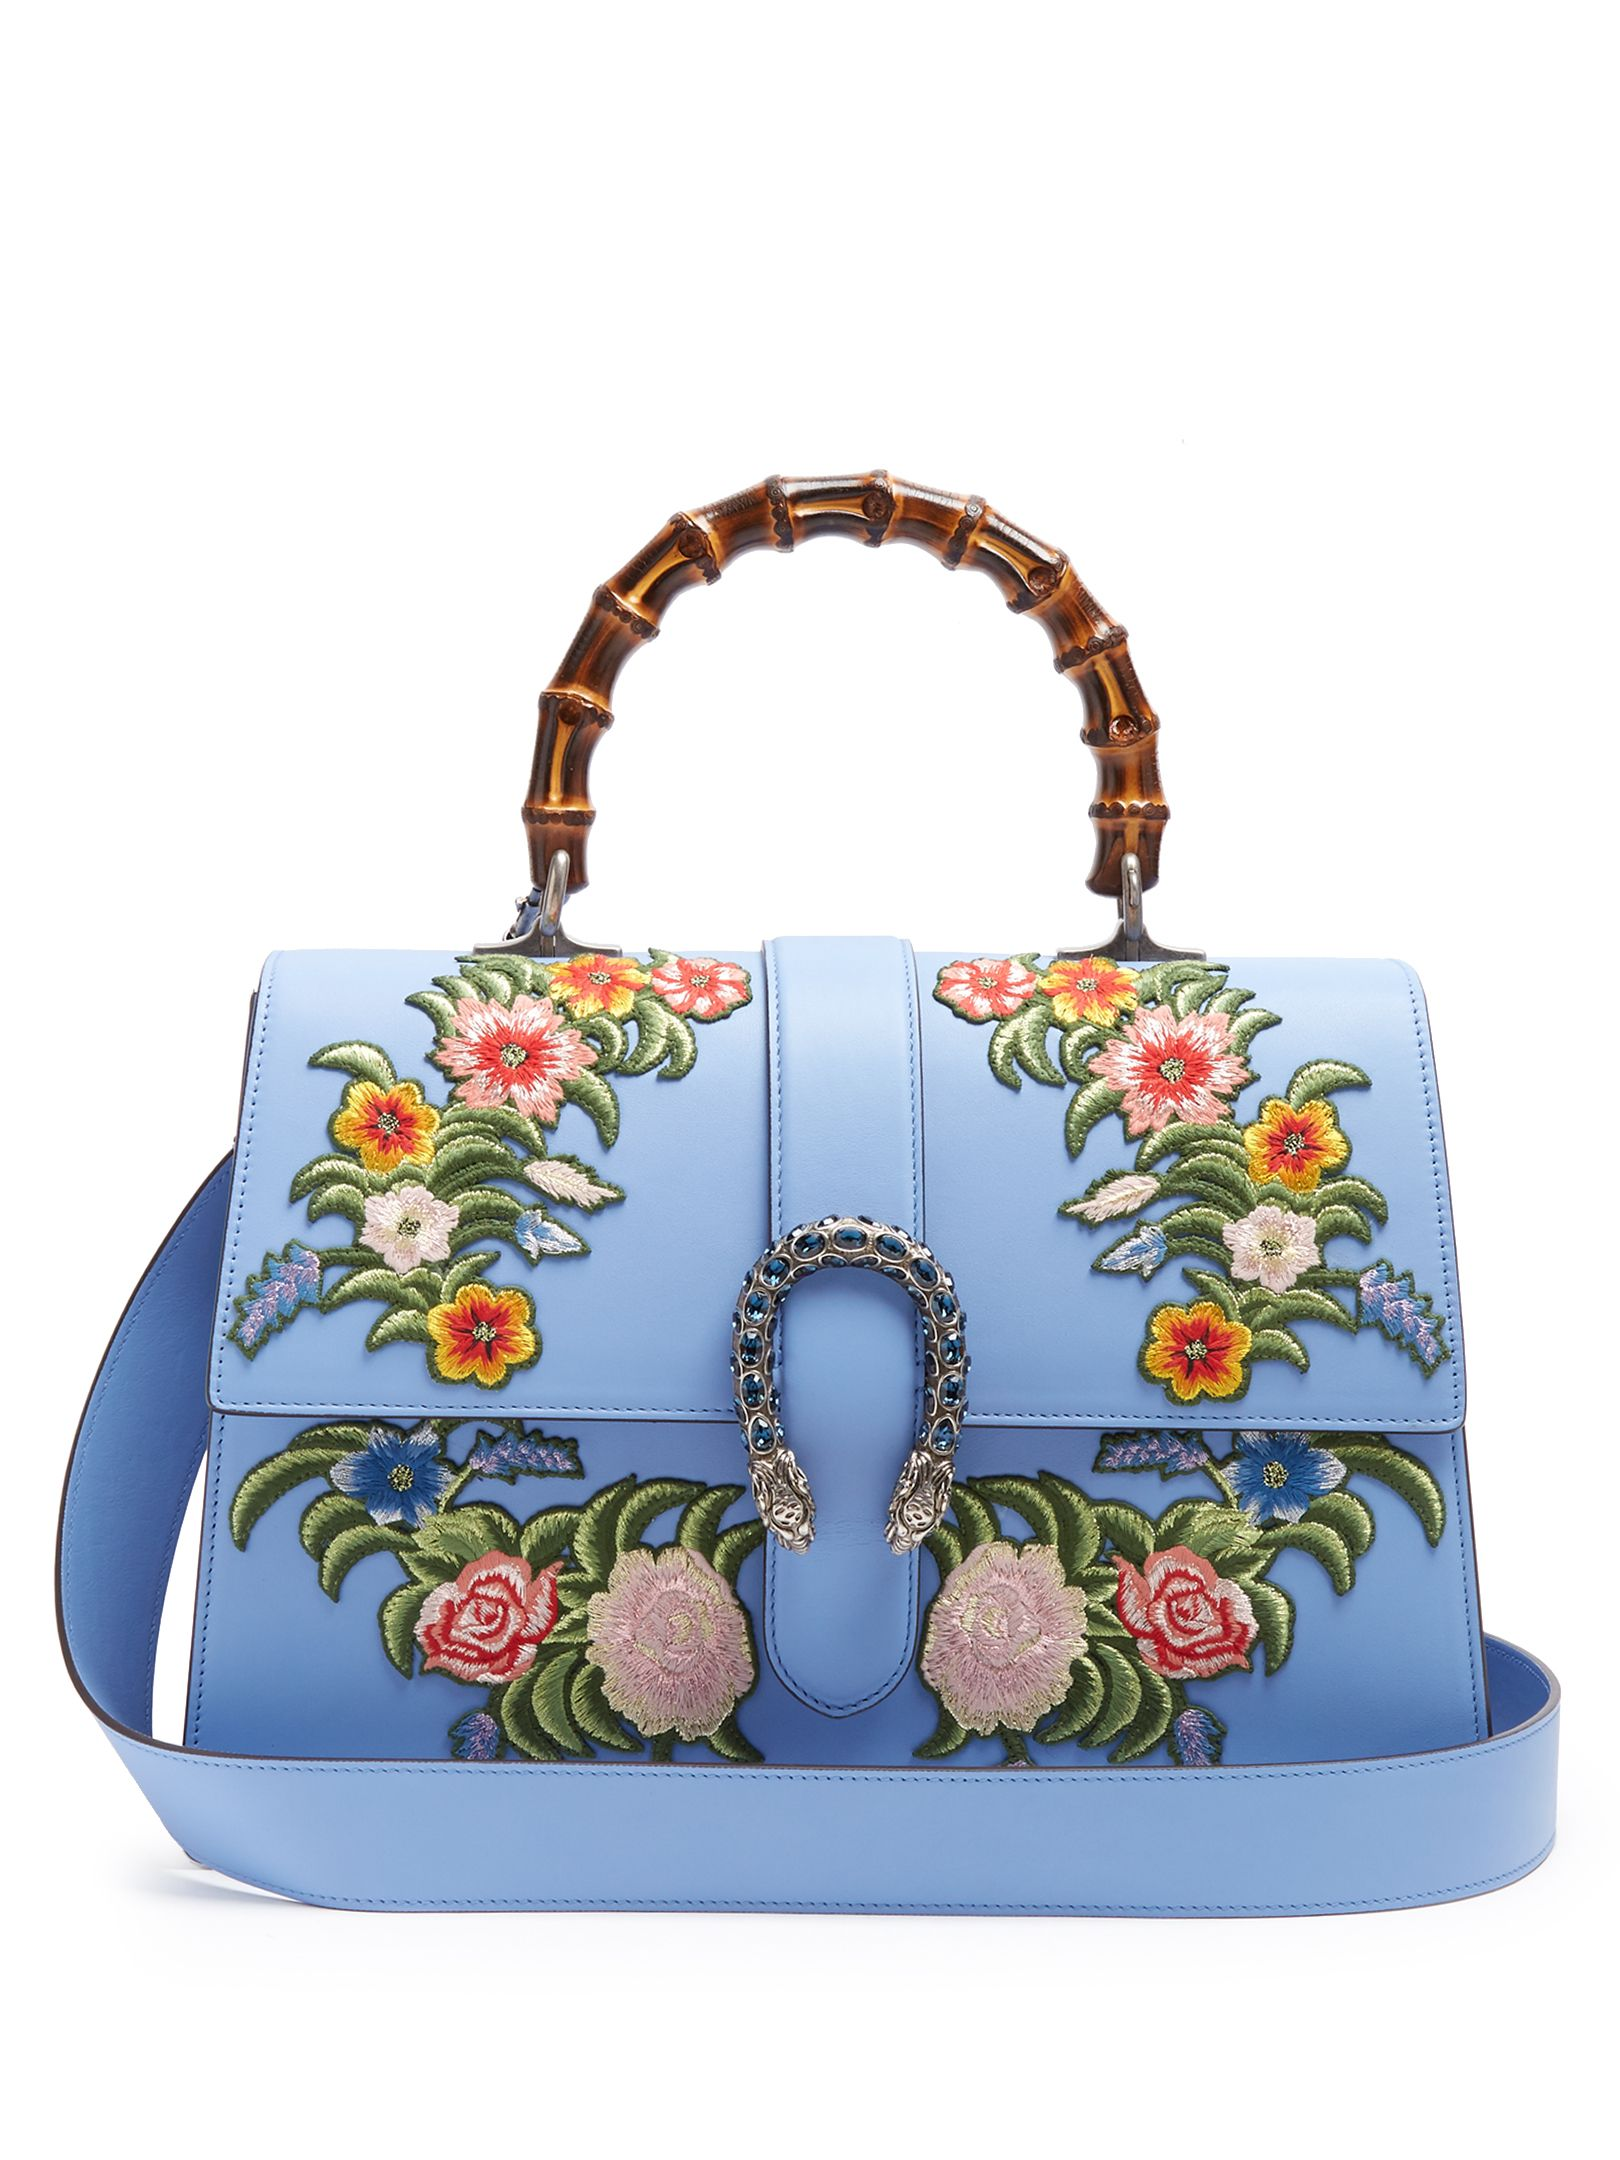 132782b08c GUCCI Dionysus large floral-embroidered leather tote   Bag Lady ...